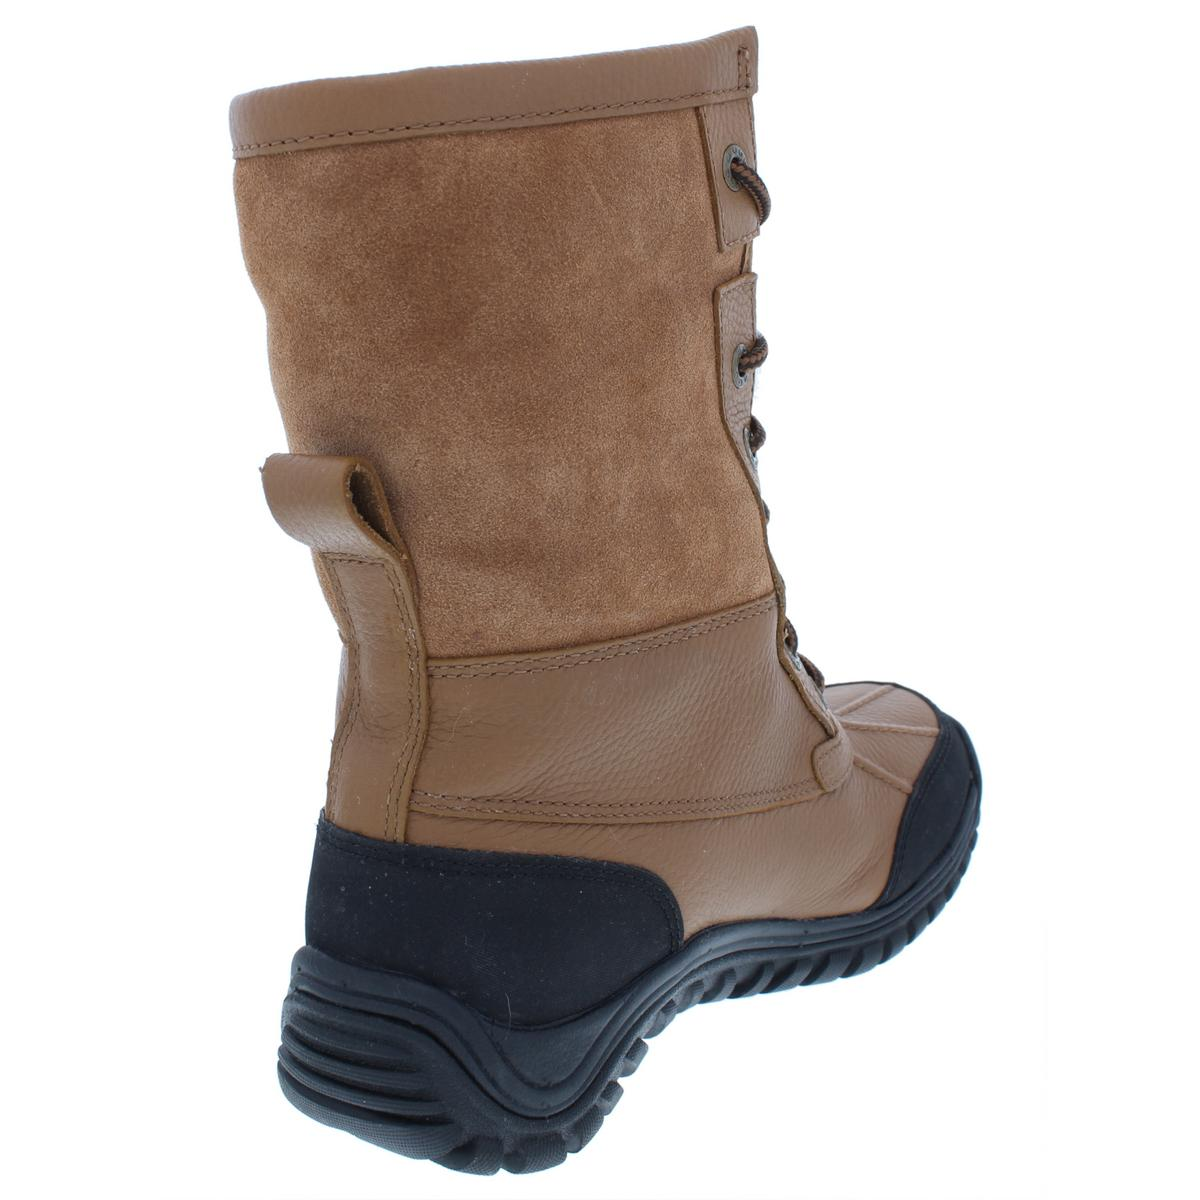 a86785b92ca Details about Ugg Womens Adirondack Brown Winter Boots Shoes 5.5 Medium  (B,M) BHFO 5584